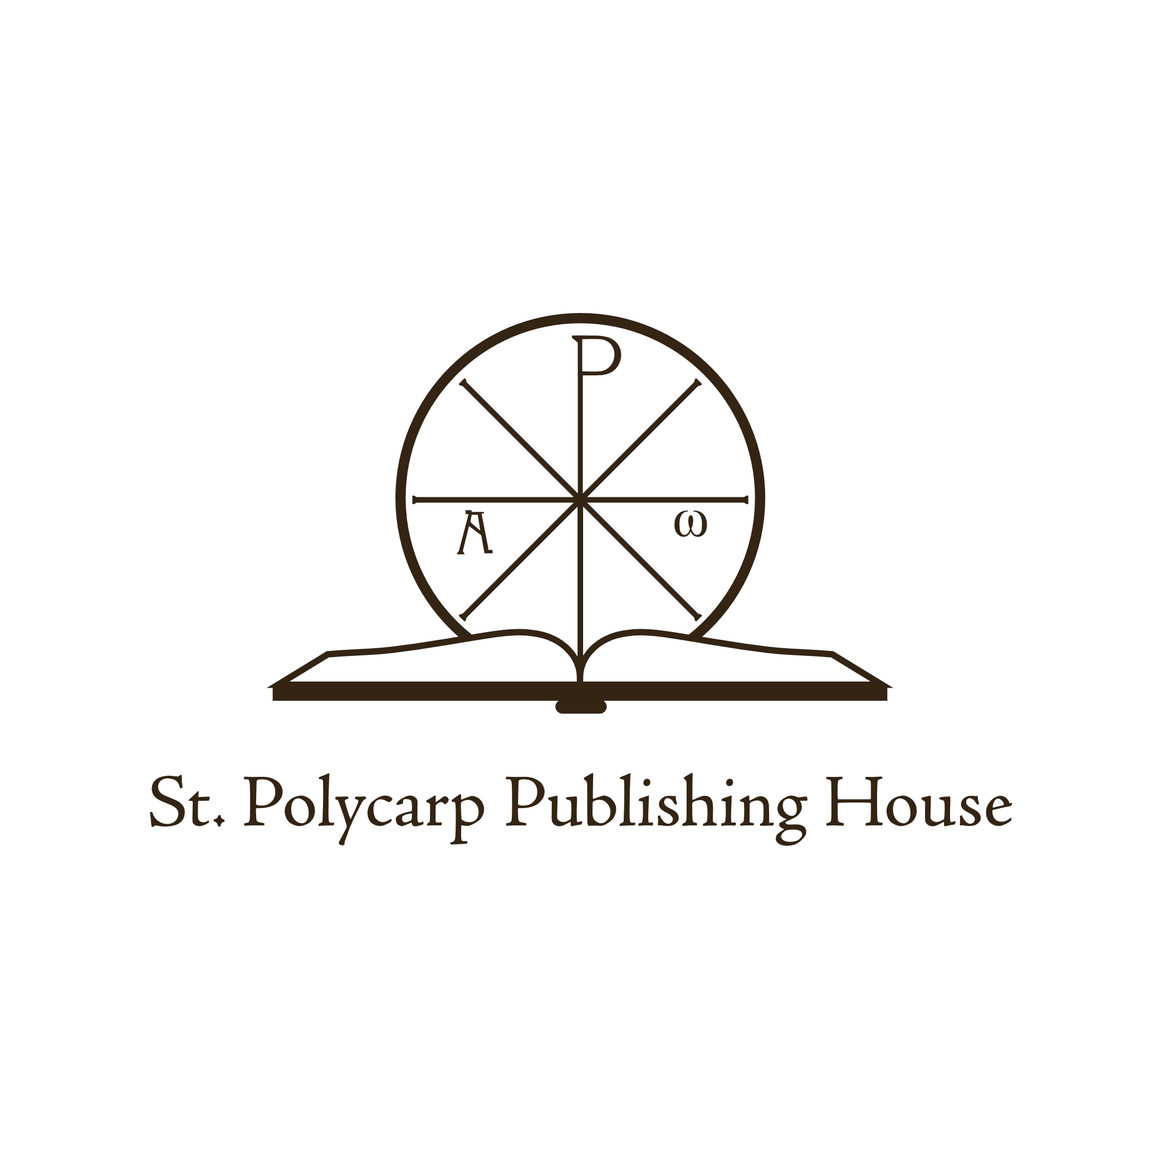 Gift Card for St. Polycarp Publishing House